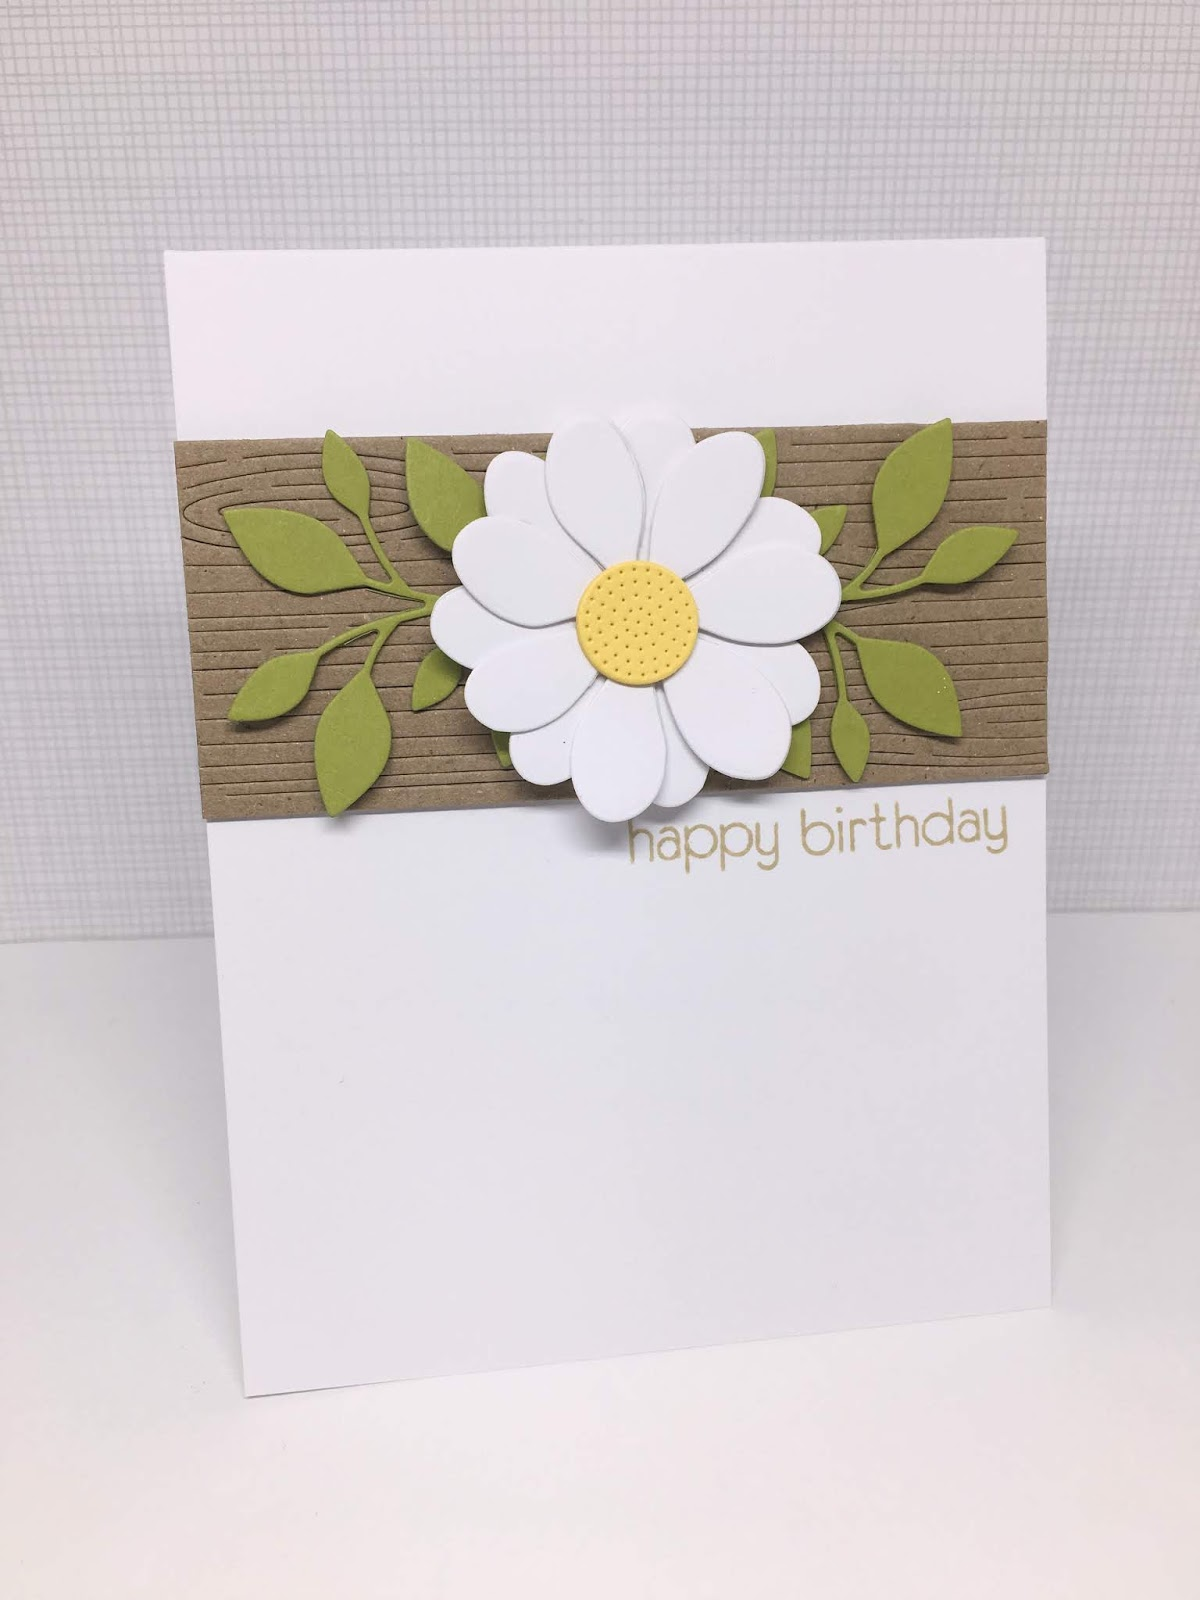 Im in haven birthday flower cards daisies and sunflowers are her favorite flowers so i chose a couple daisy looking dies and my favorite sunflower die for my cards and made cards to izmirmasajfo